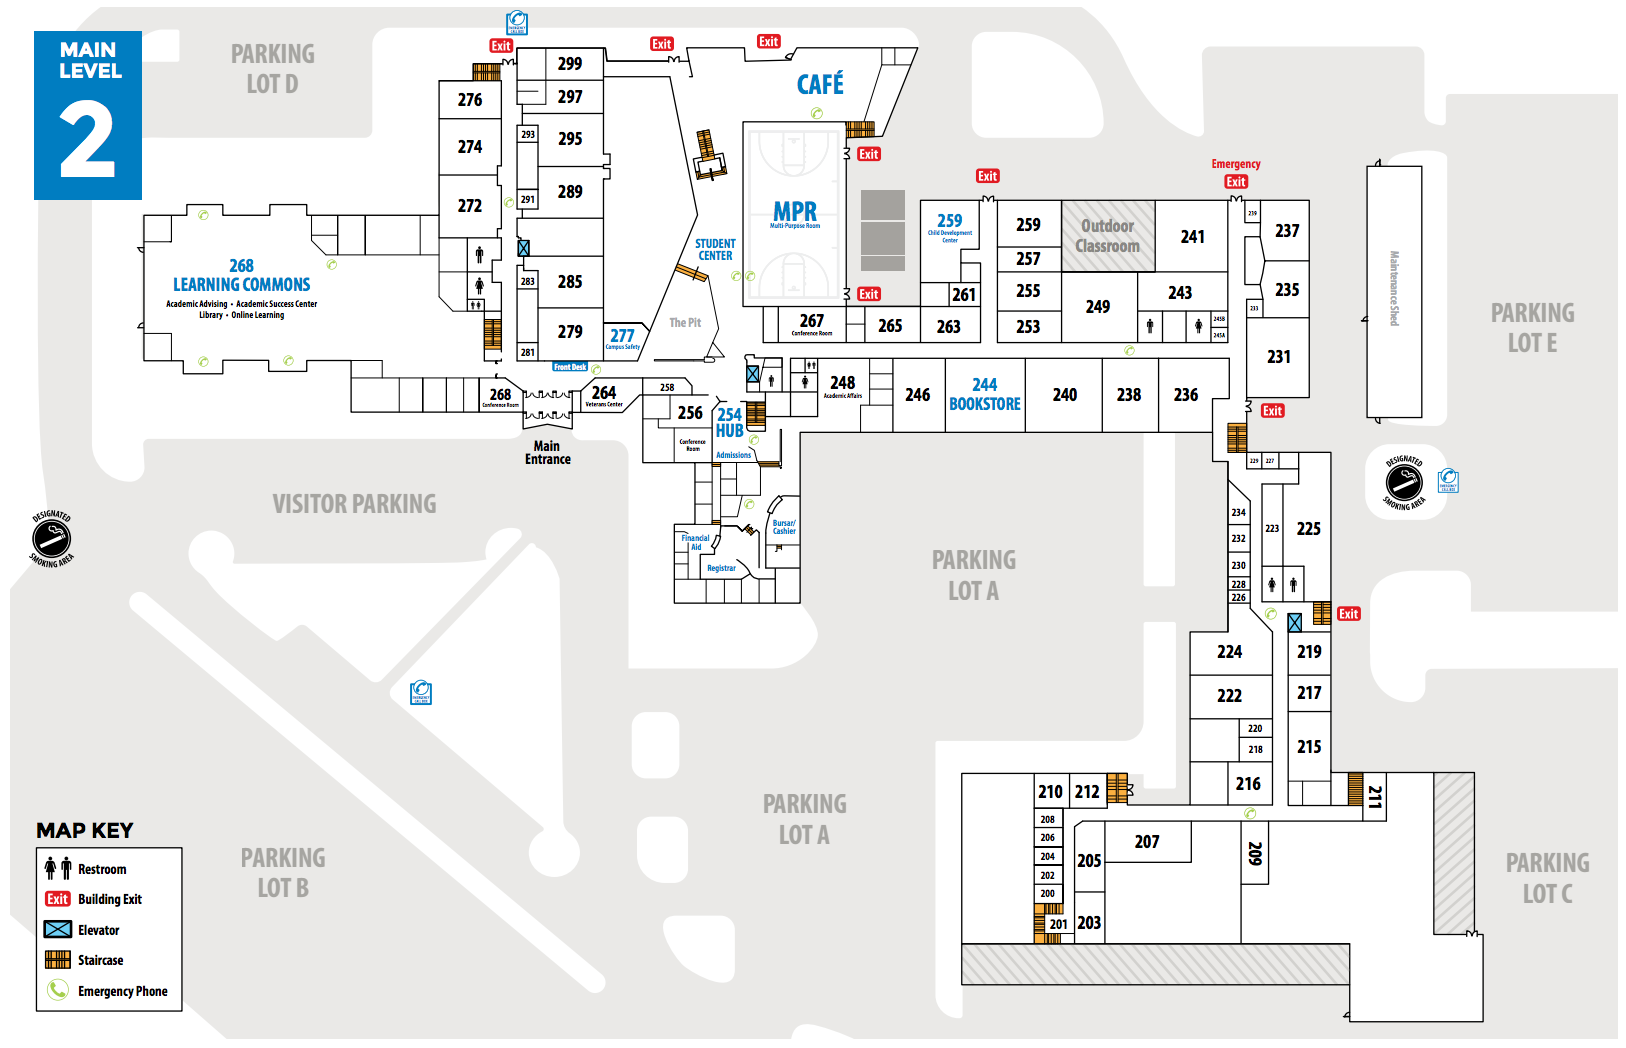 manchester community college campus map Campus Map And Directions Manchester Community College New manchester community college campus map